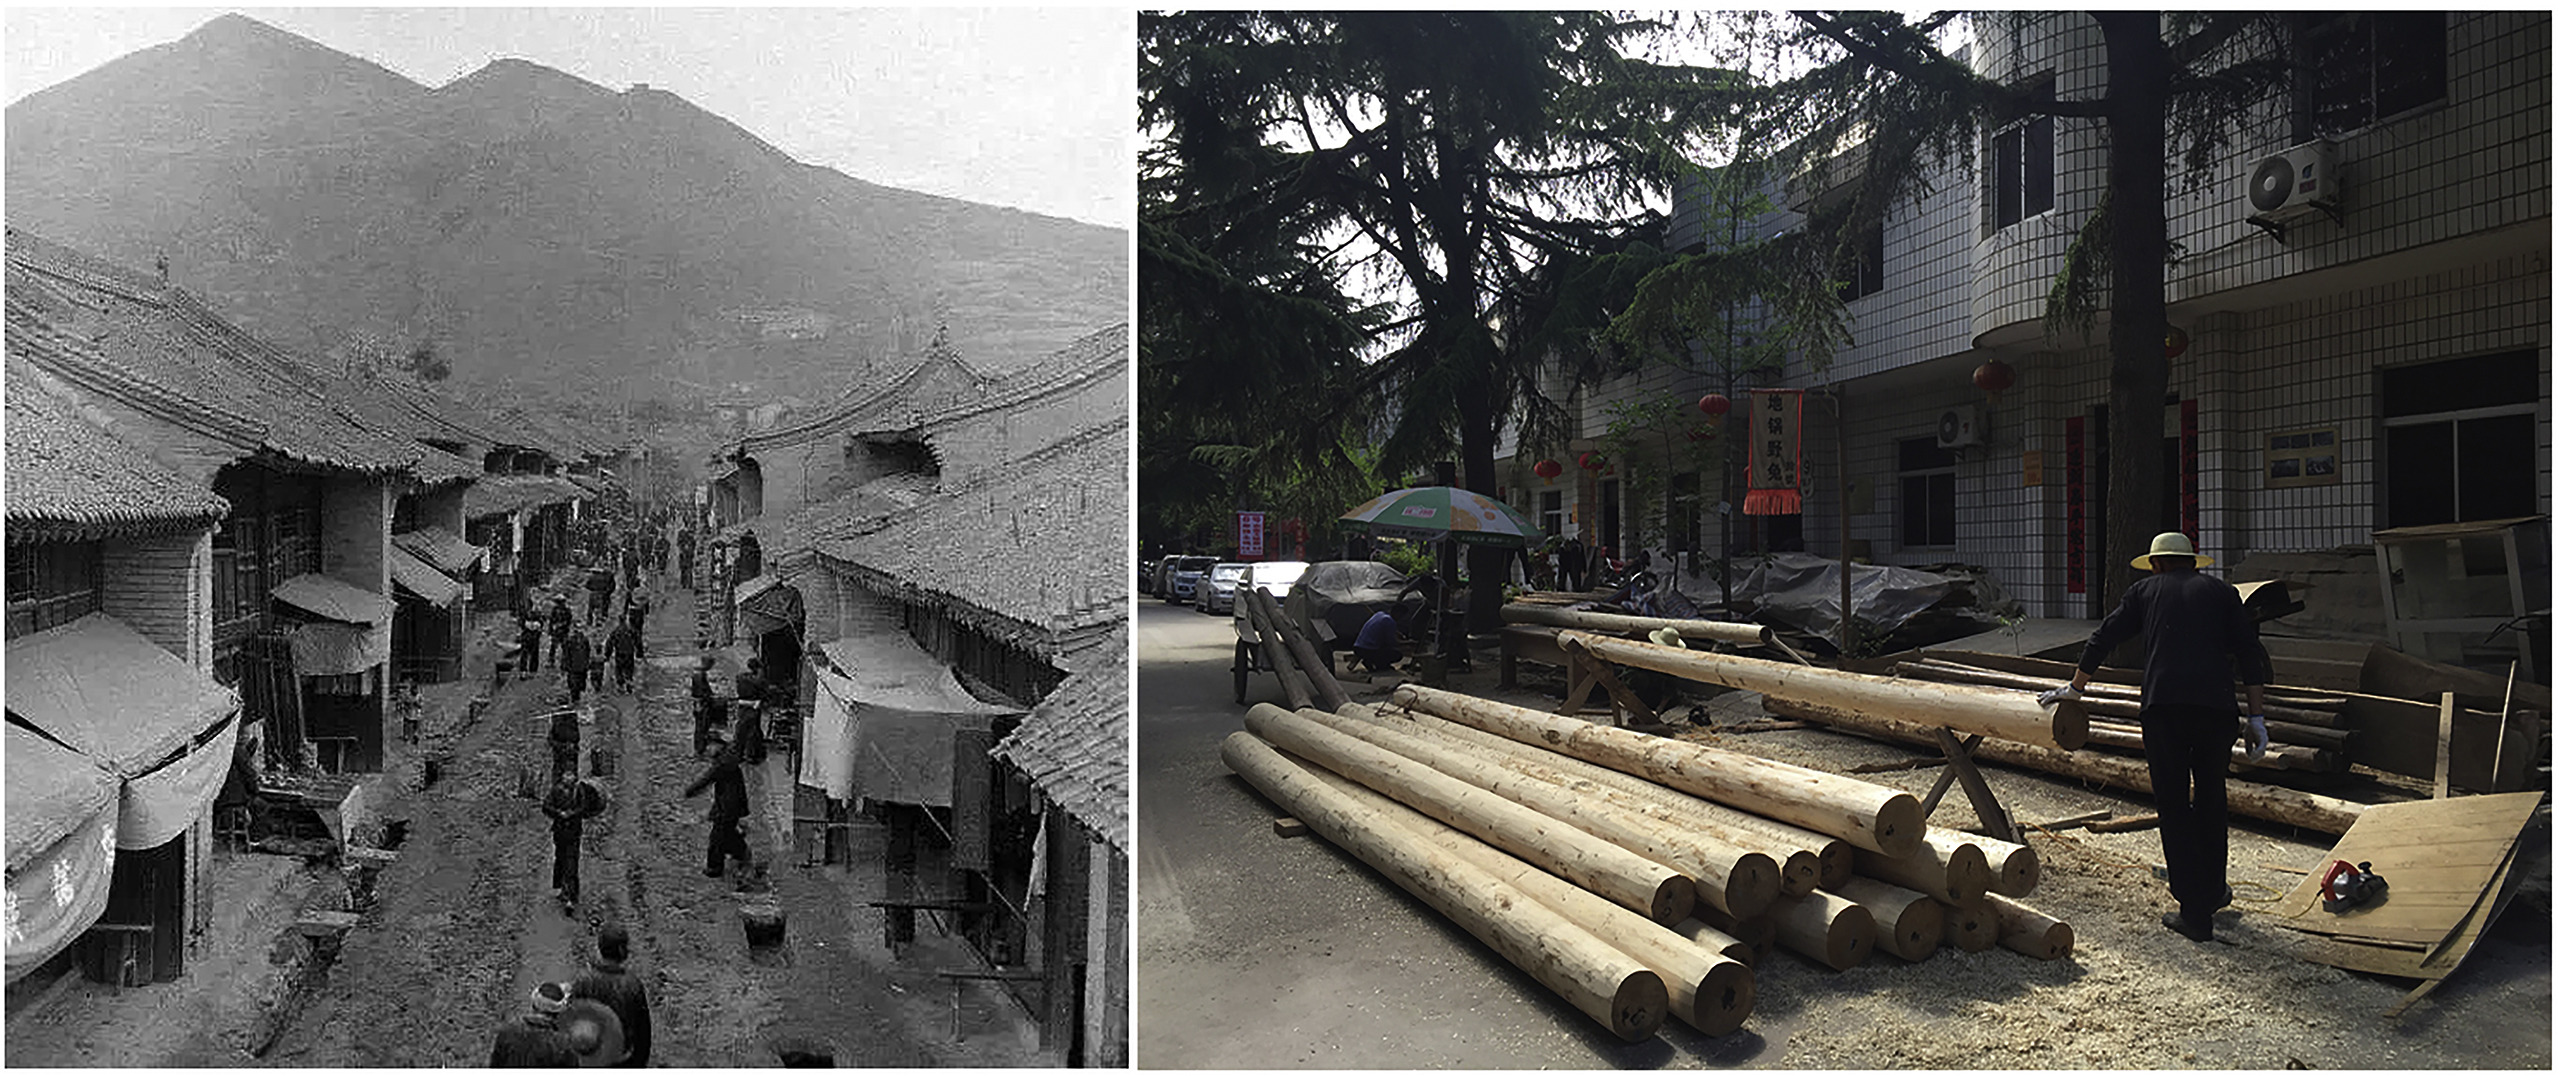 The main street in 1950s (left) and now (right).